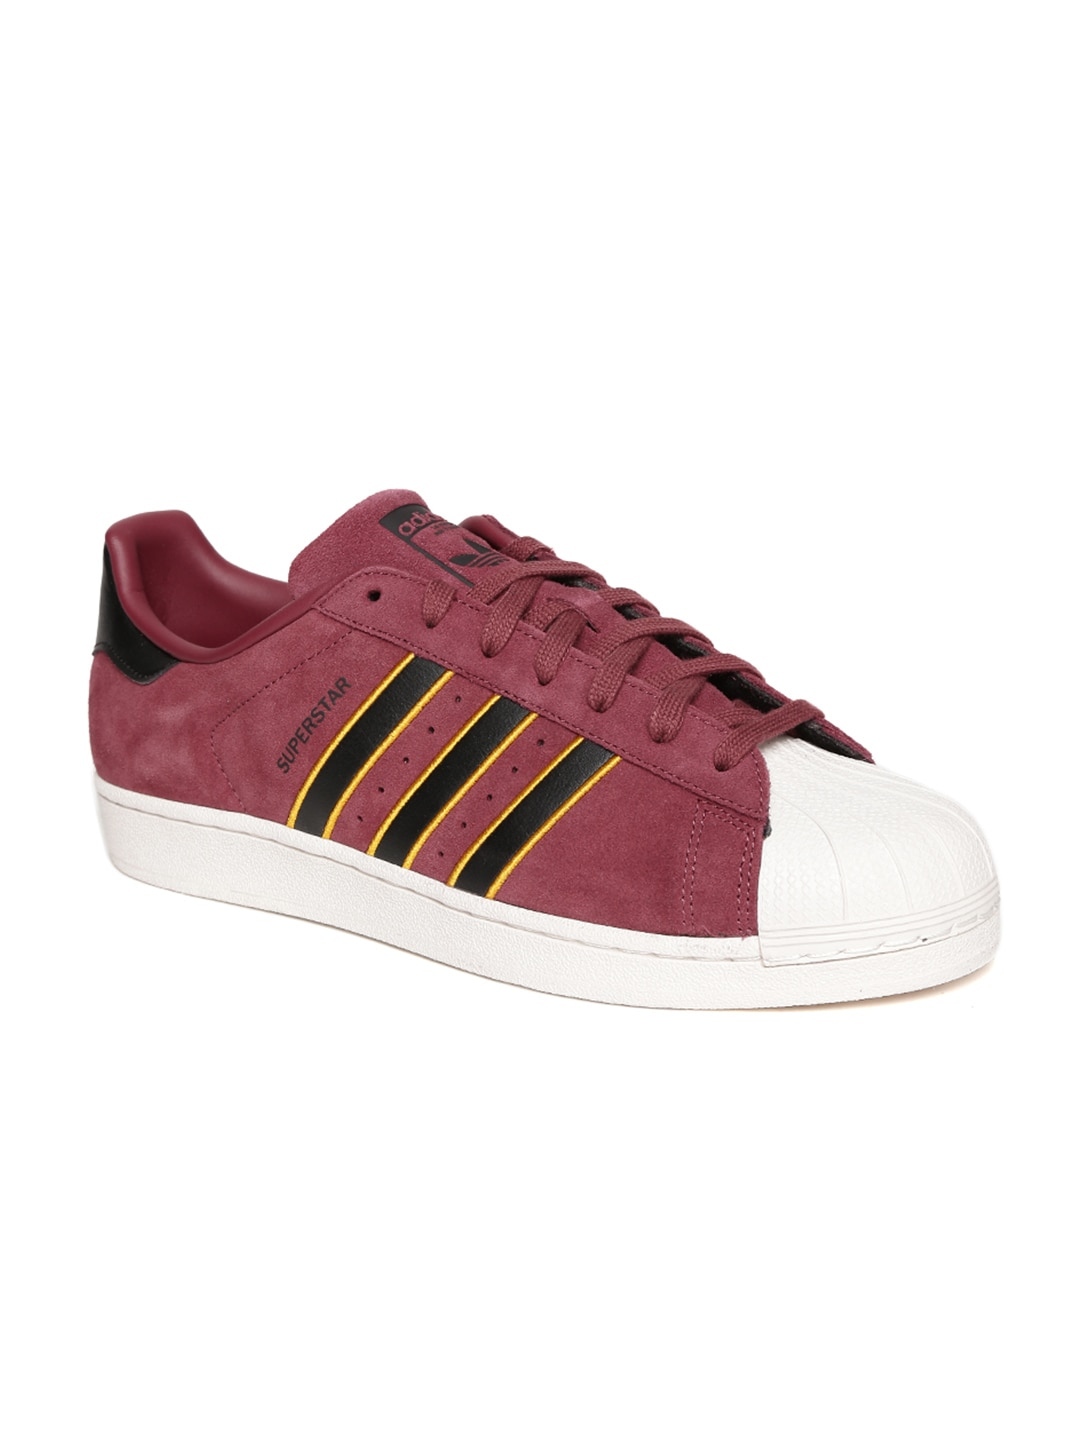 huge selection of cfb9e f8e48 Adidas Shoe Hat Tracksuits Sports Shoes - Buy Adidas Shoe Hat Tracksuits  Sports Shoes online in India